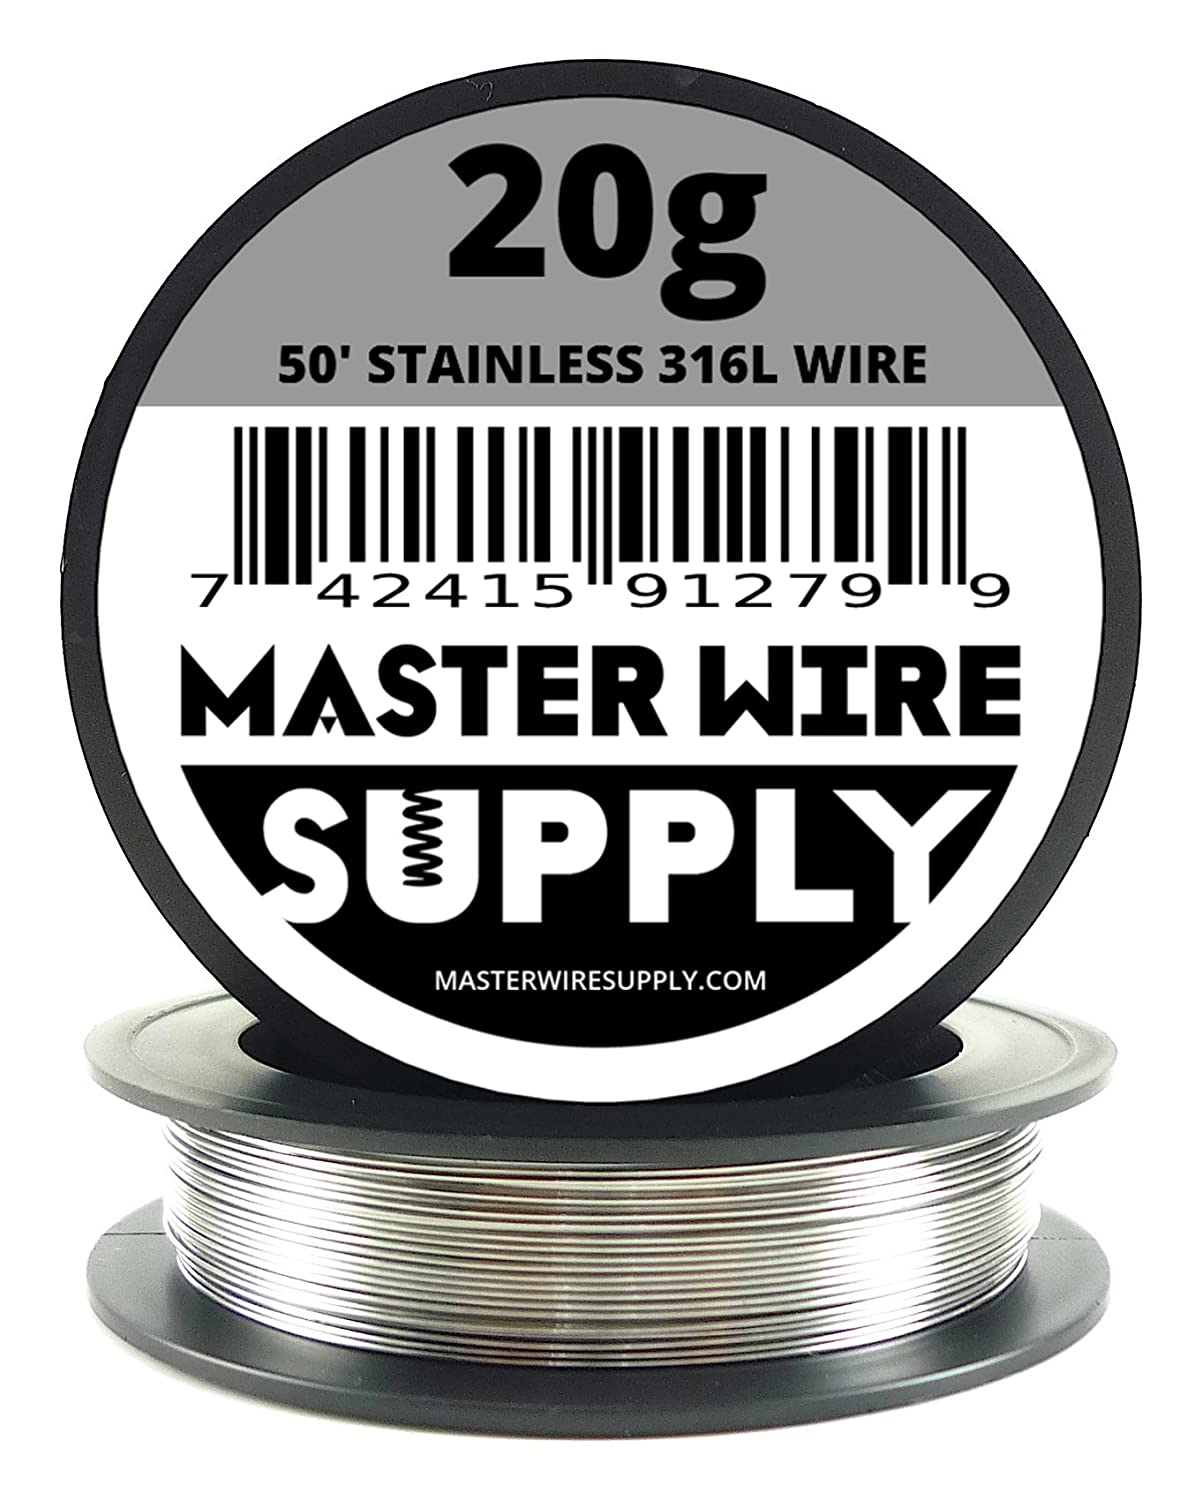 Stainless Steel 316L - 50' - 20 Gauge Wire Master Wire Supply 4336834430